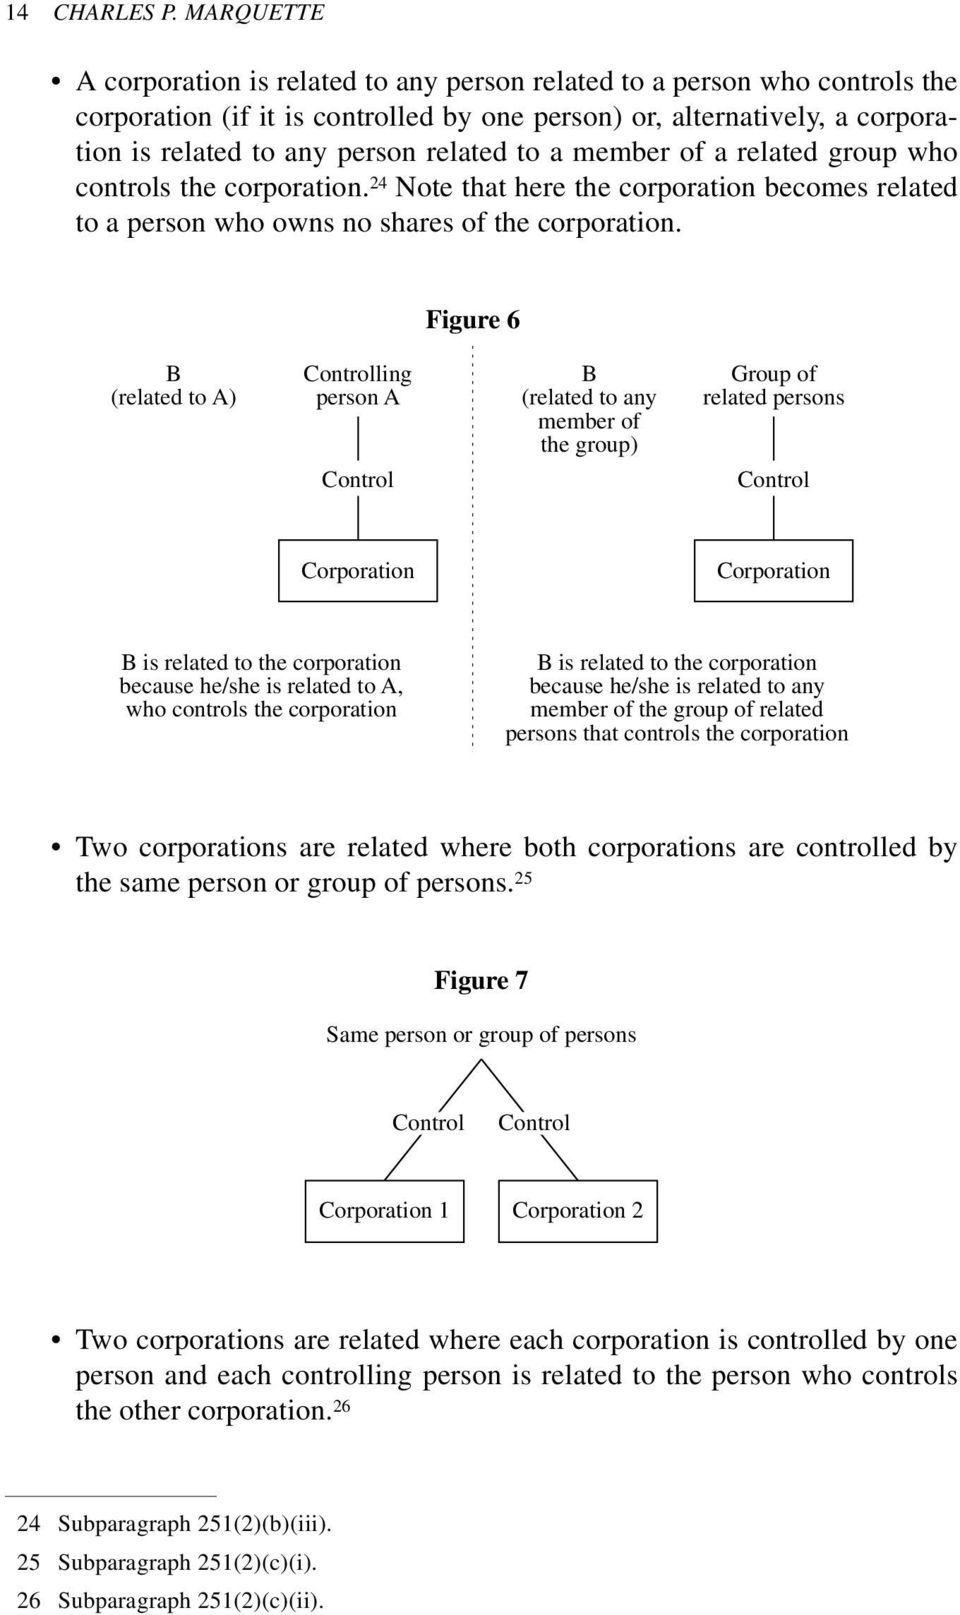 to a member of a related group who controls the corporation. 24 Note that here the corporation becomes related to a person who owns no shares of the corporation.